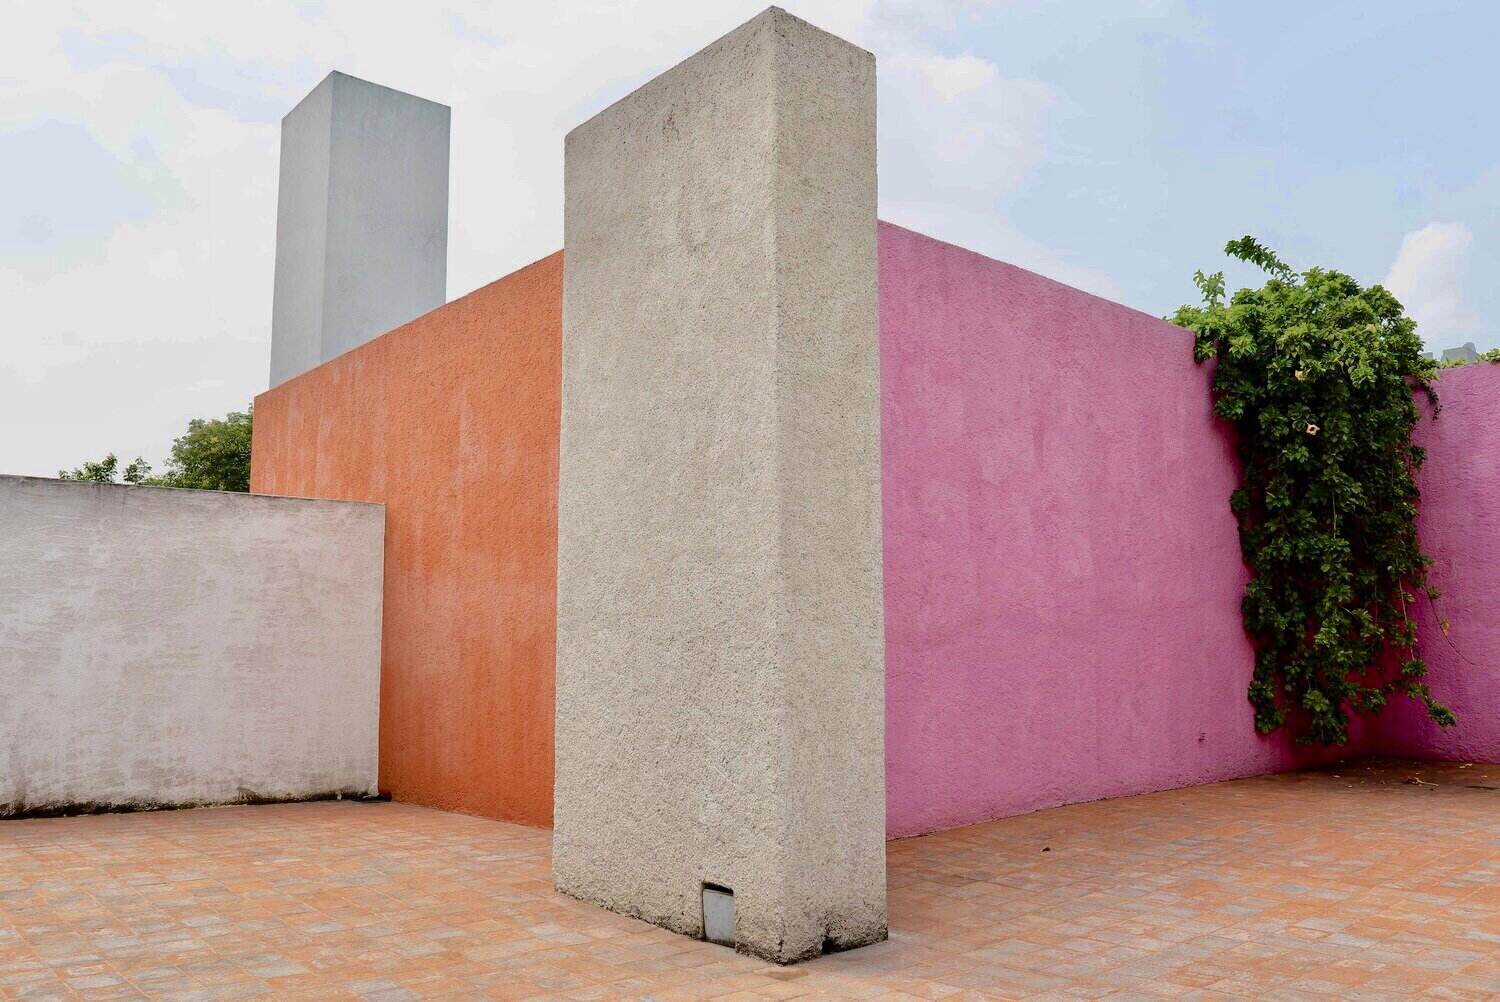 Luis Barragán's famous color-blocked terrace.